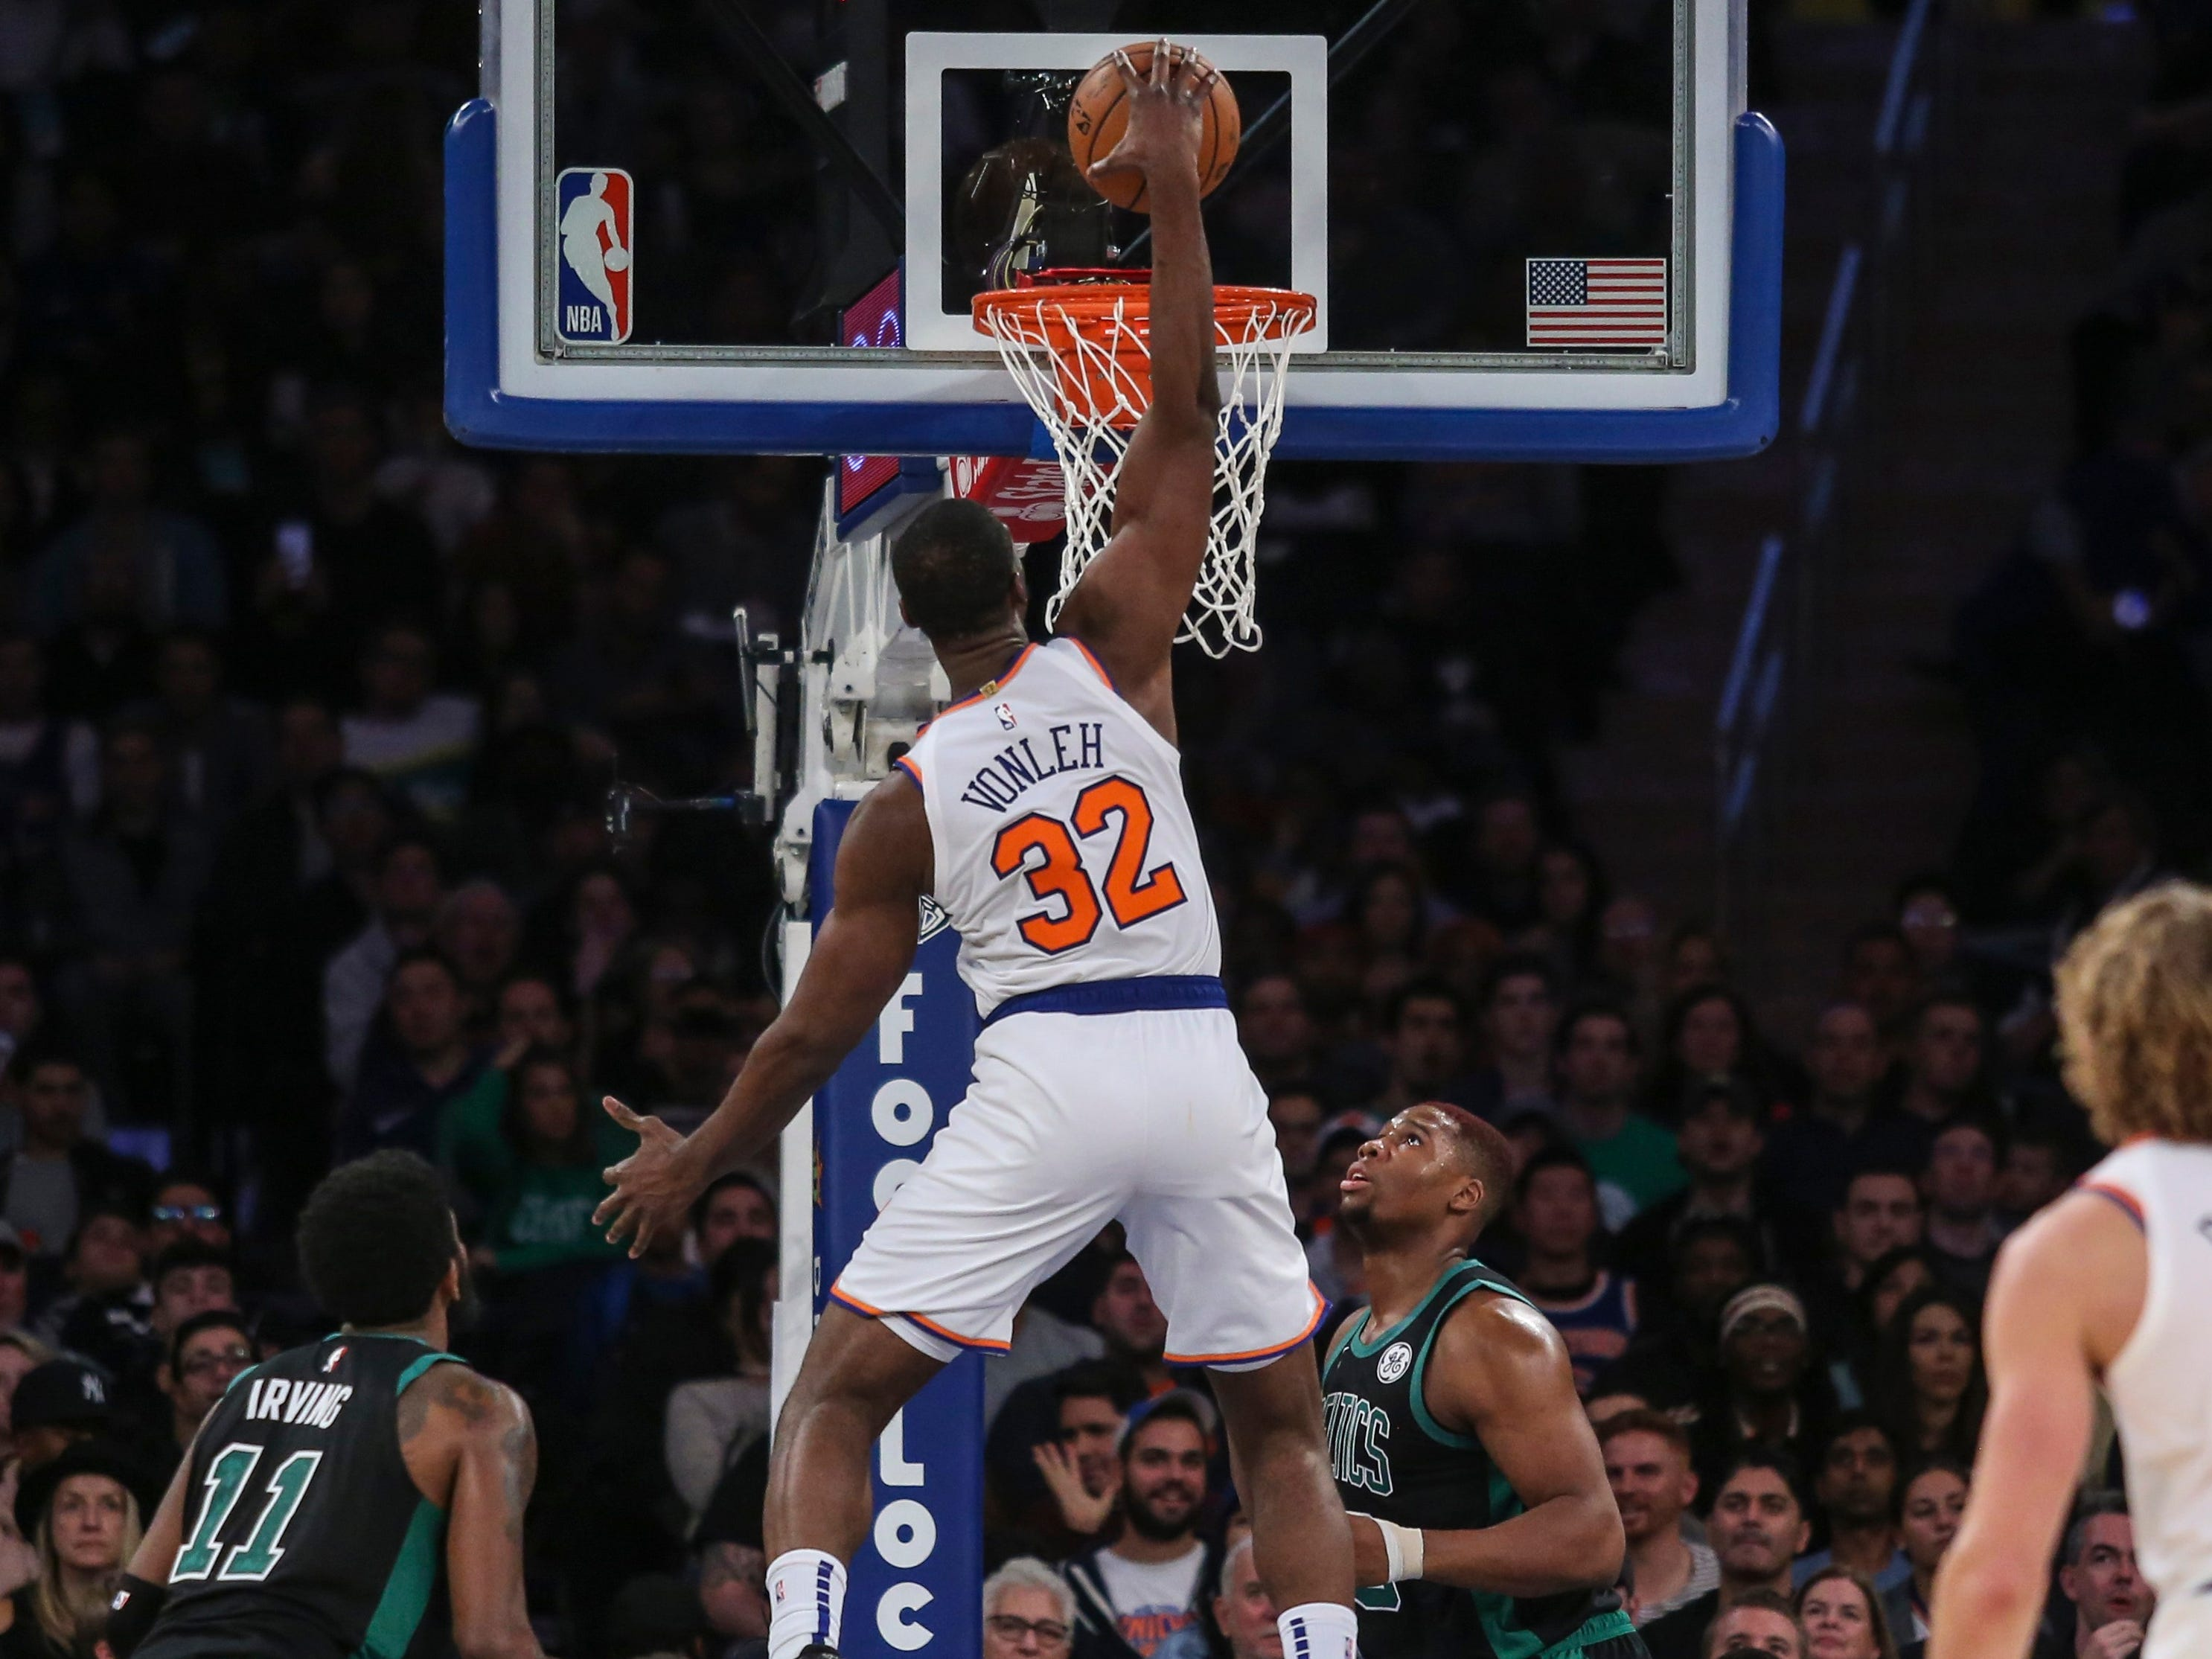 Oct. 20: Knicks forward Noah Vonleh (32) throws down a one-handed slam against the Celtics.